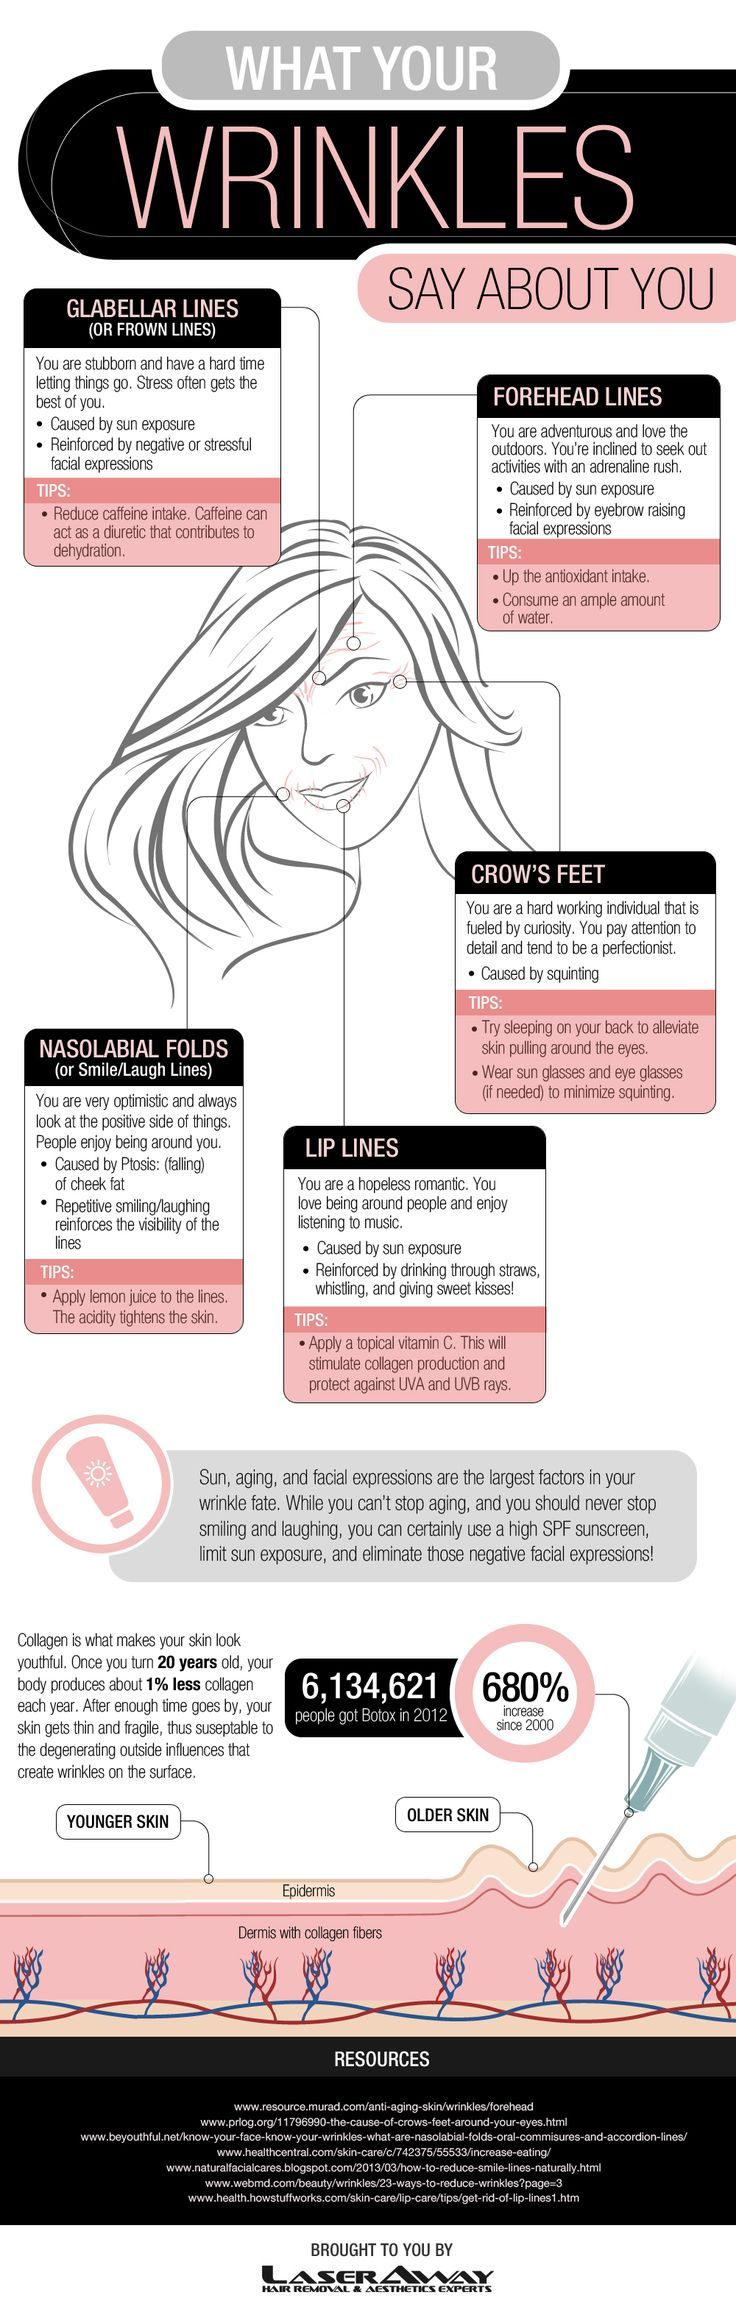 What do your wrinkles say about you? Have you been over stressed or is your life filled with laughter? This infographic suggests the main cause of your wrinkles, as well as a few tips and tricks to help prevent their future progression. #beauty #skincare #bbloggers